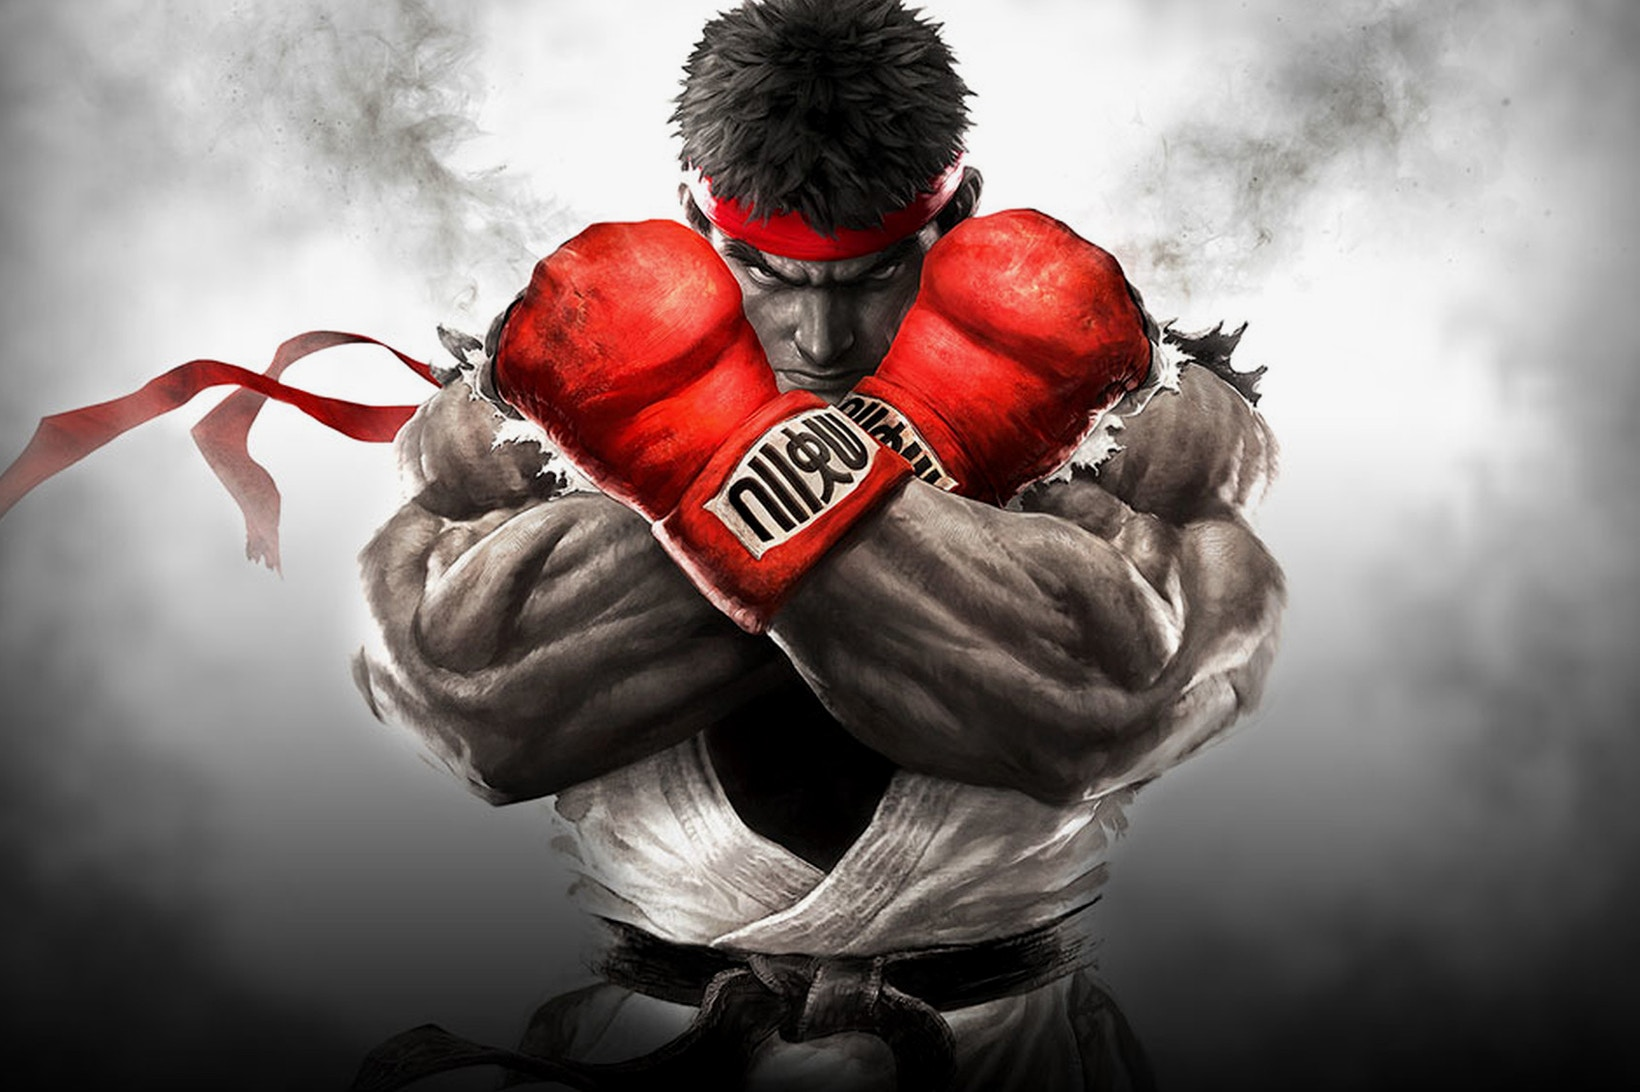 street-fighter-tv-series-adaptation-1